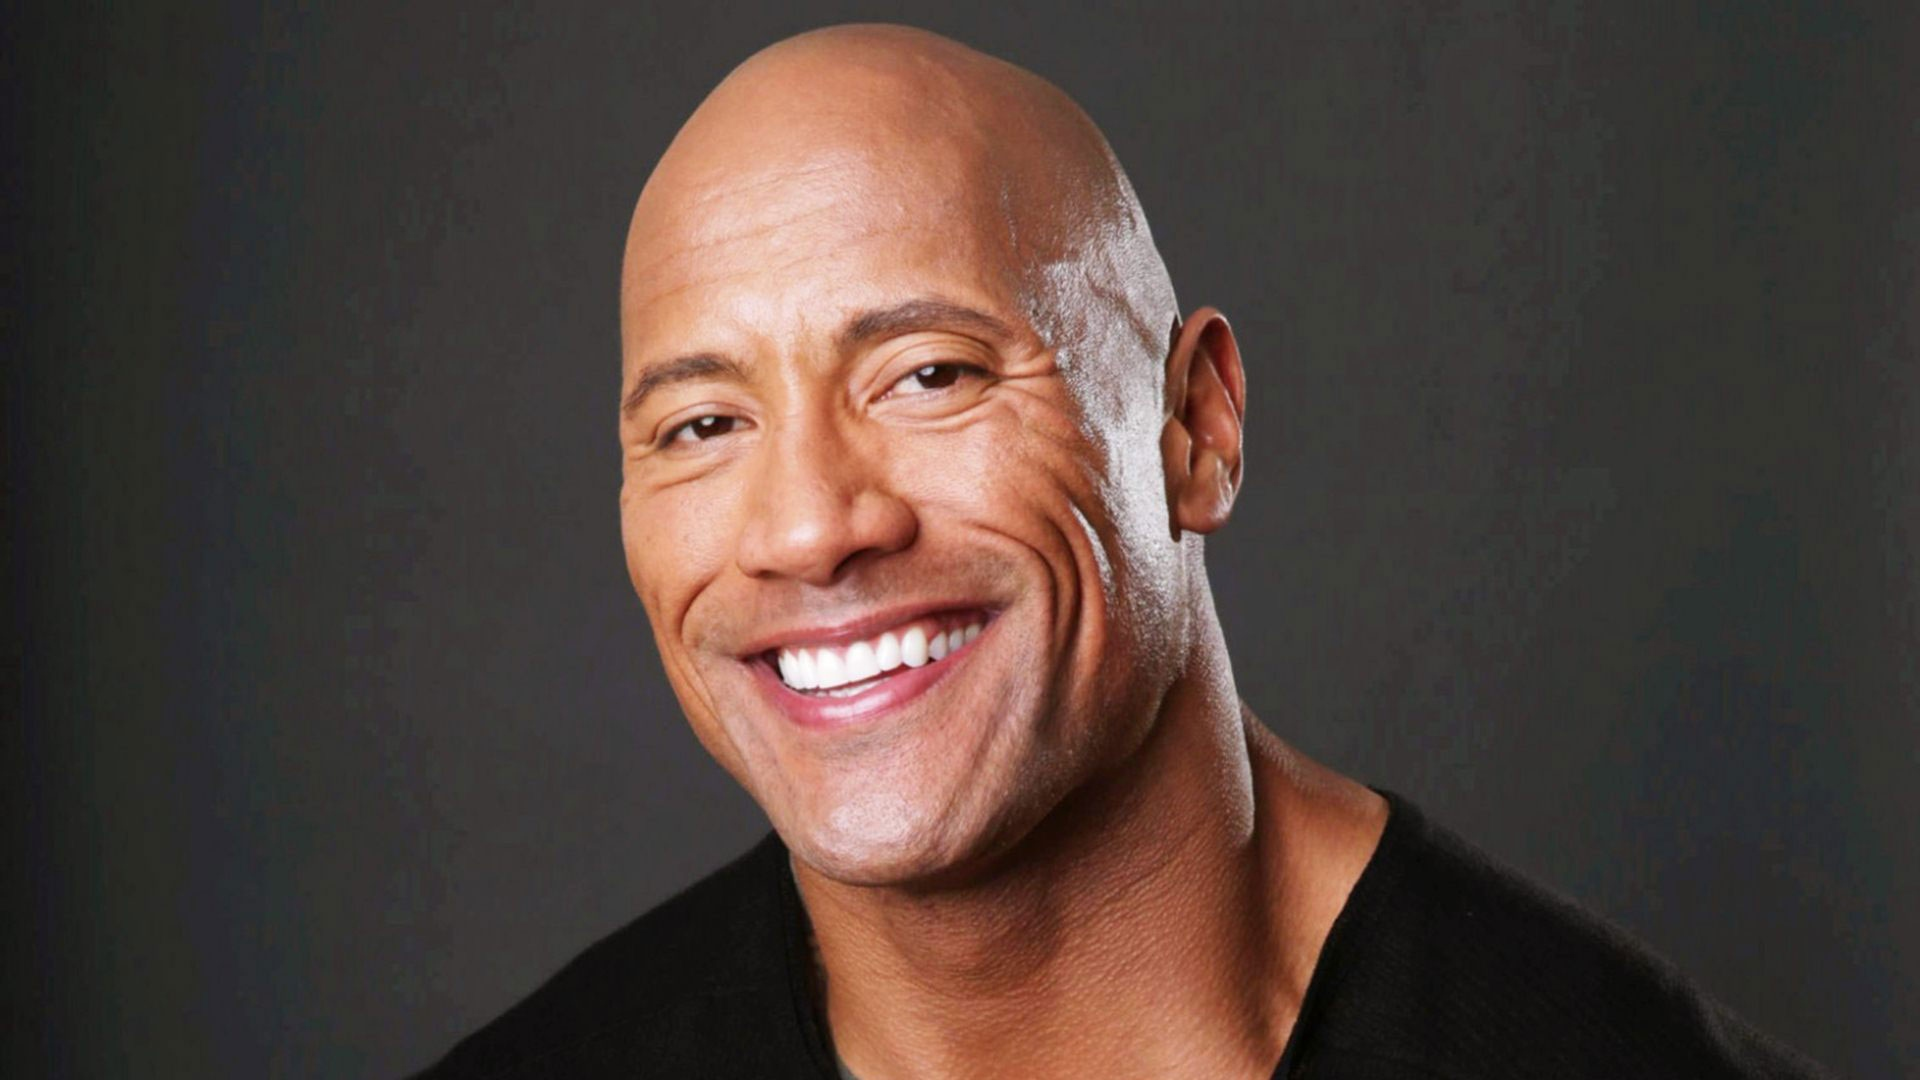 Dwayne Johnson Wallpapers Images Photos Pictures Backgrounds